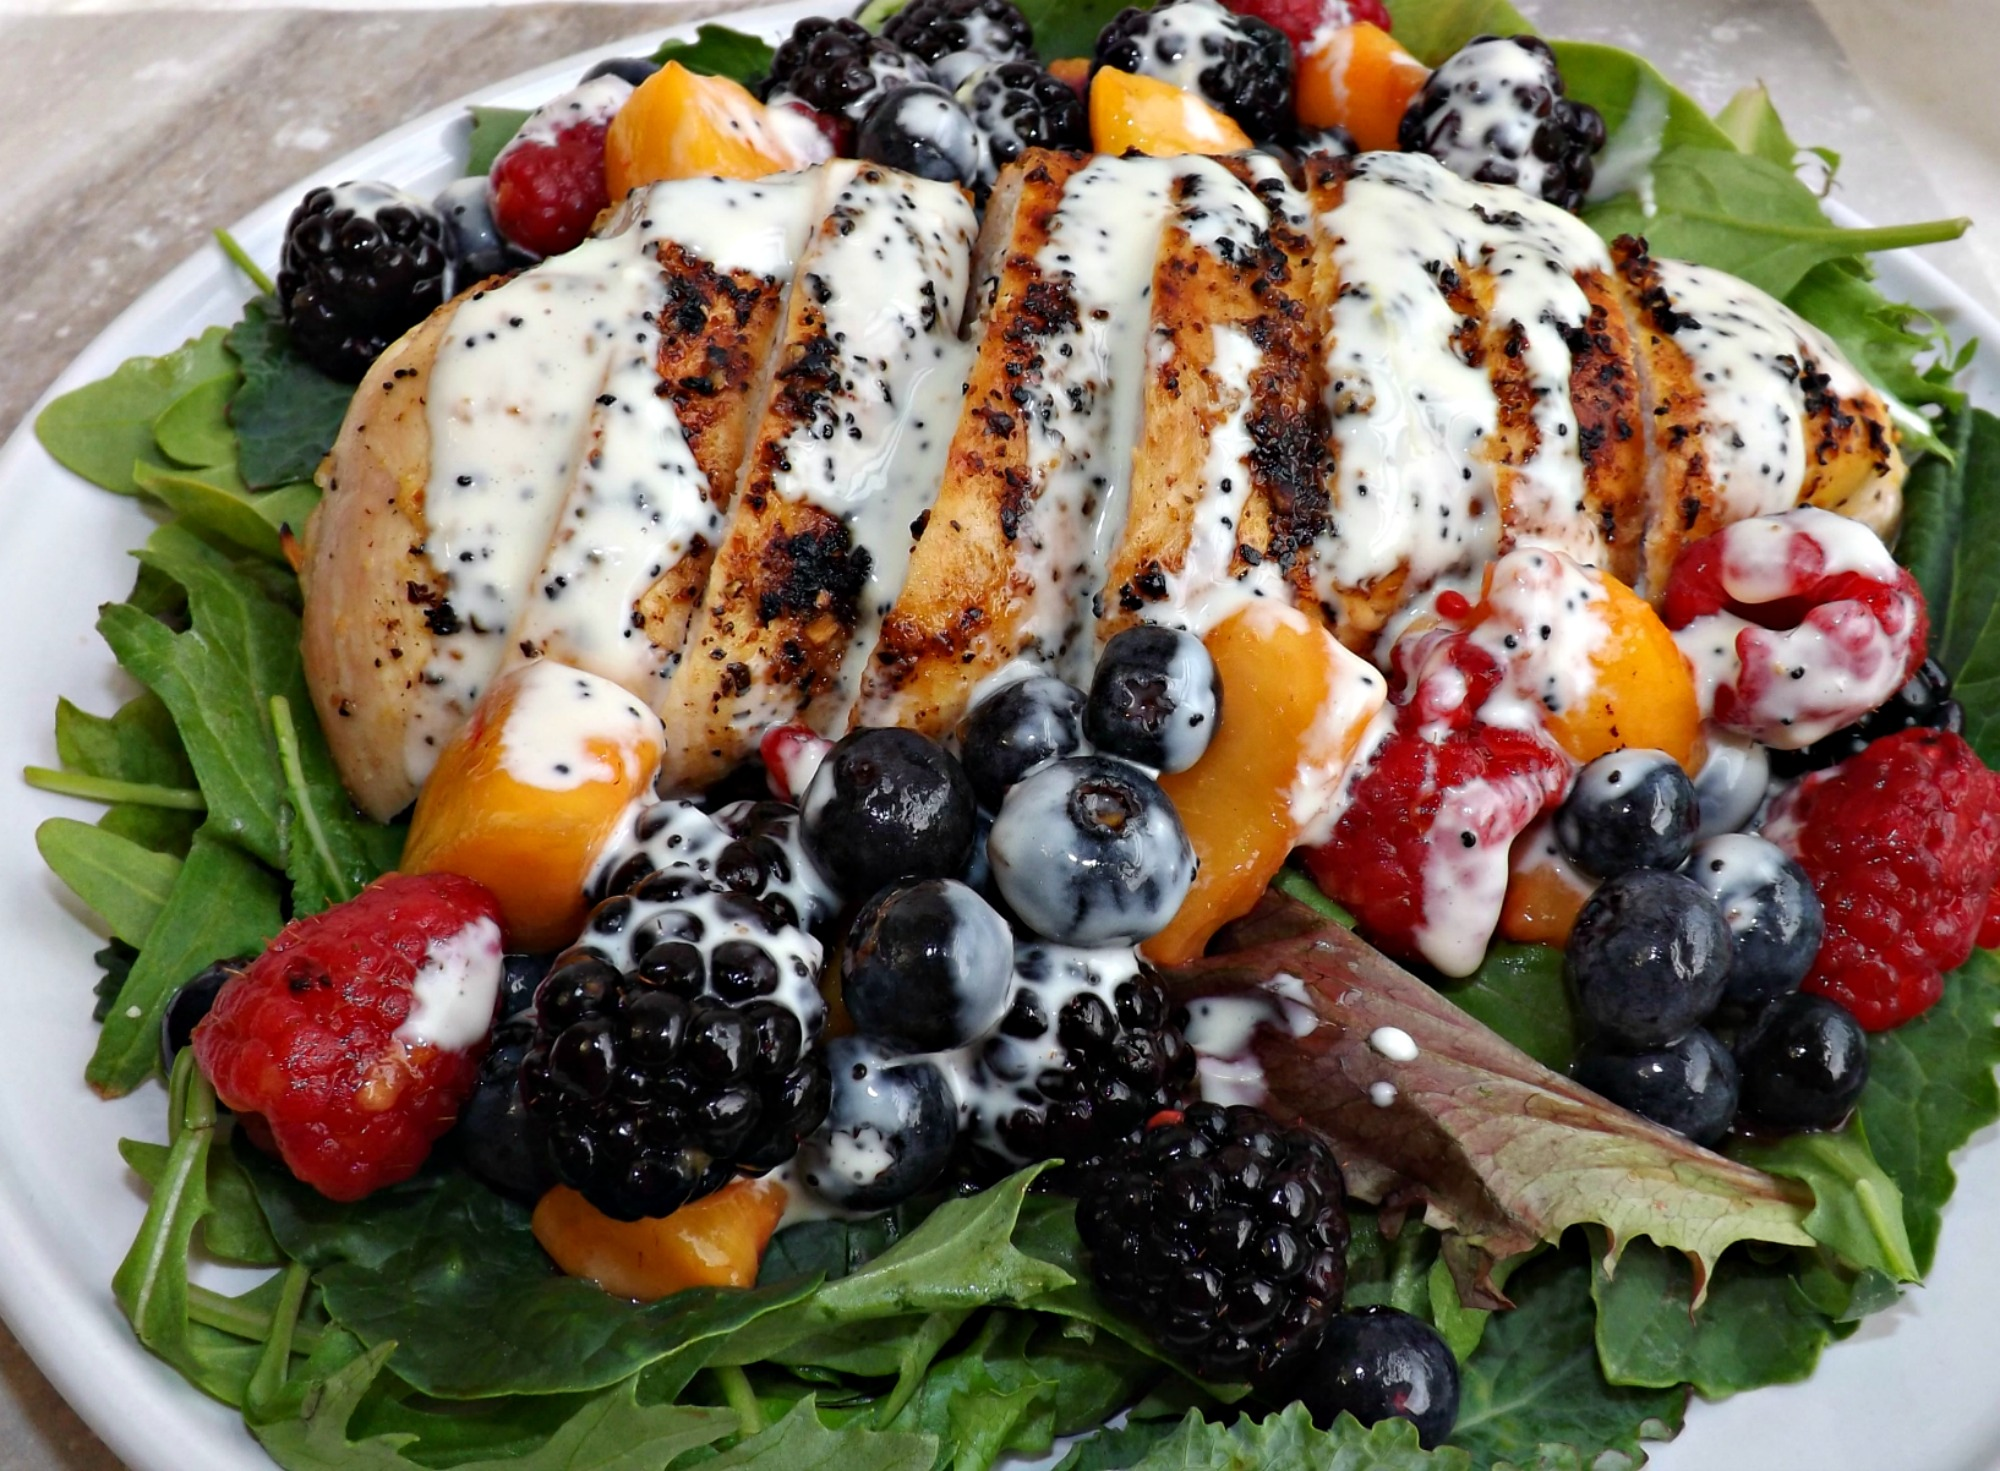 Red, White & Blue Grilled Chicken Salad With Lemon Poppyseed Dressing